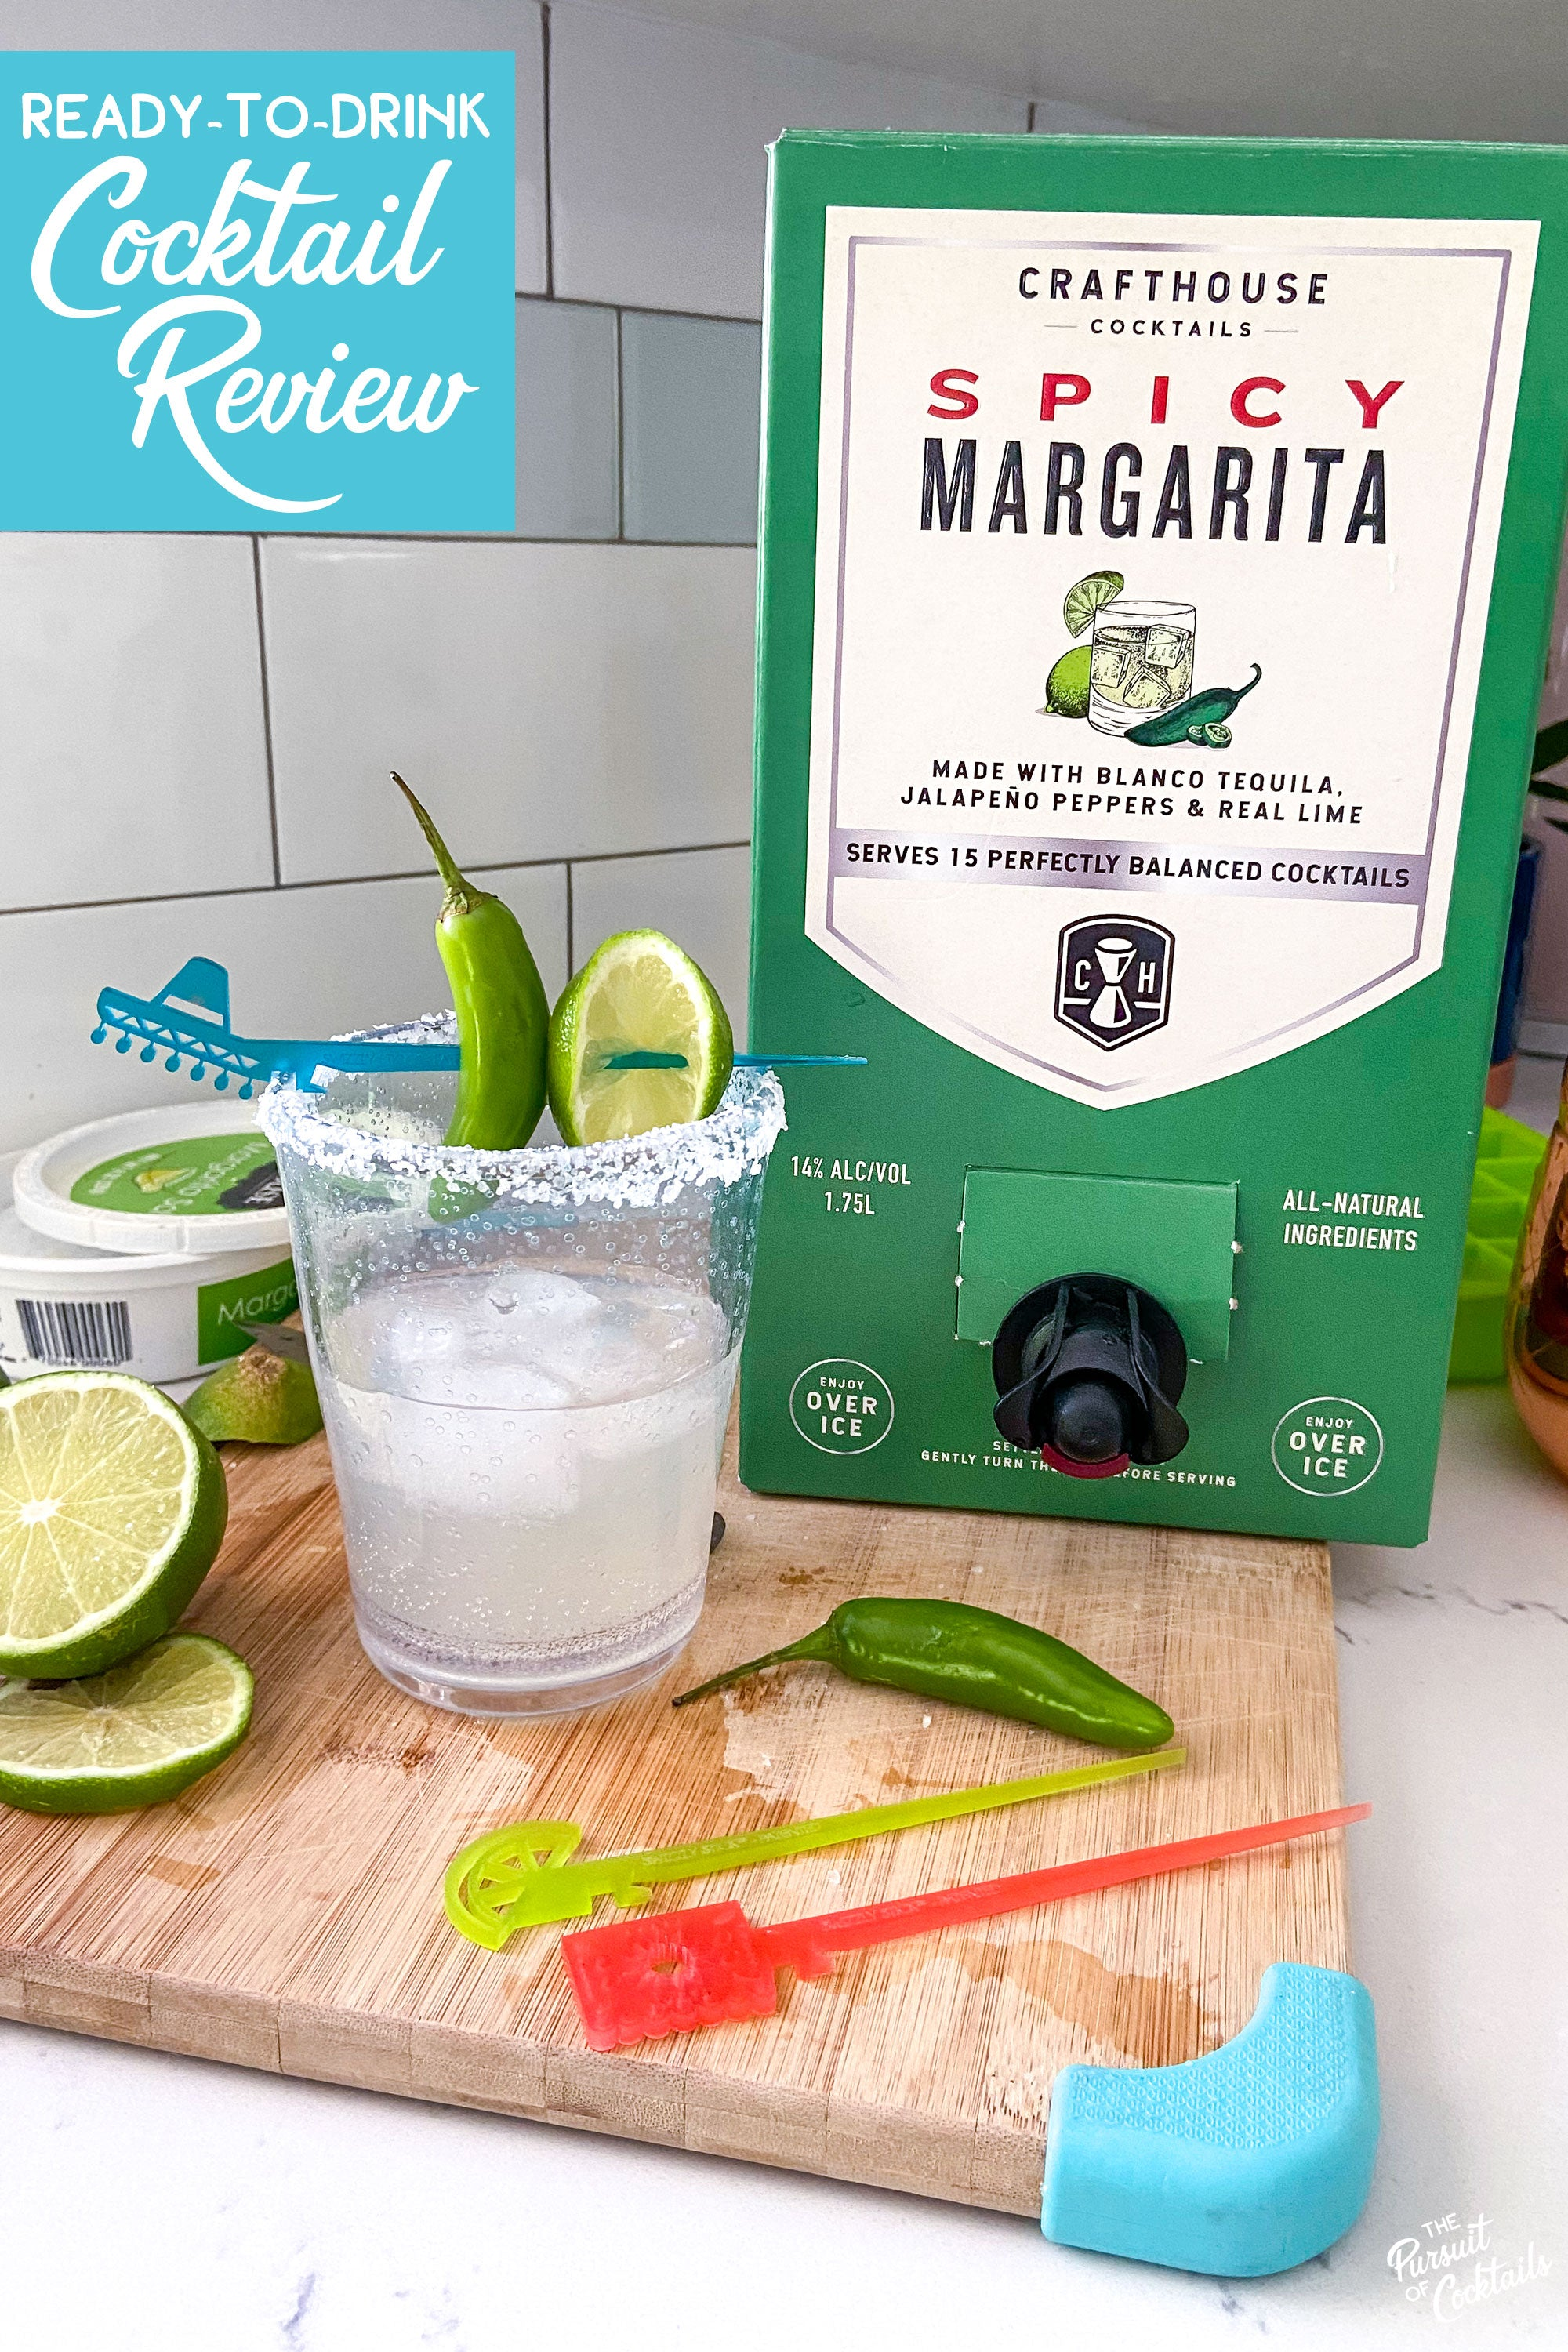 Ready-to-drink margarita review of Crafthouse Cocktails spicy margarita party box